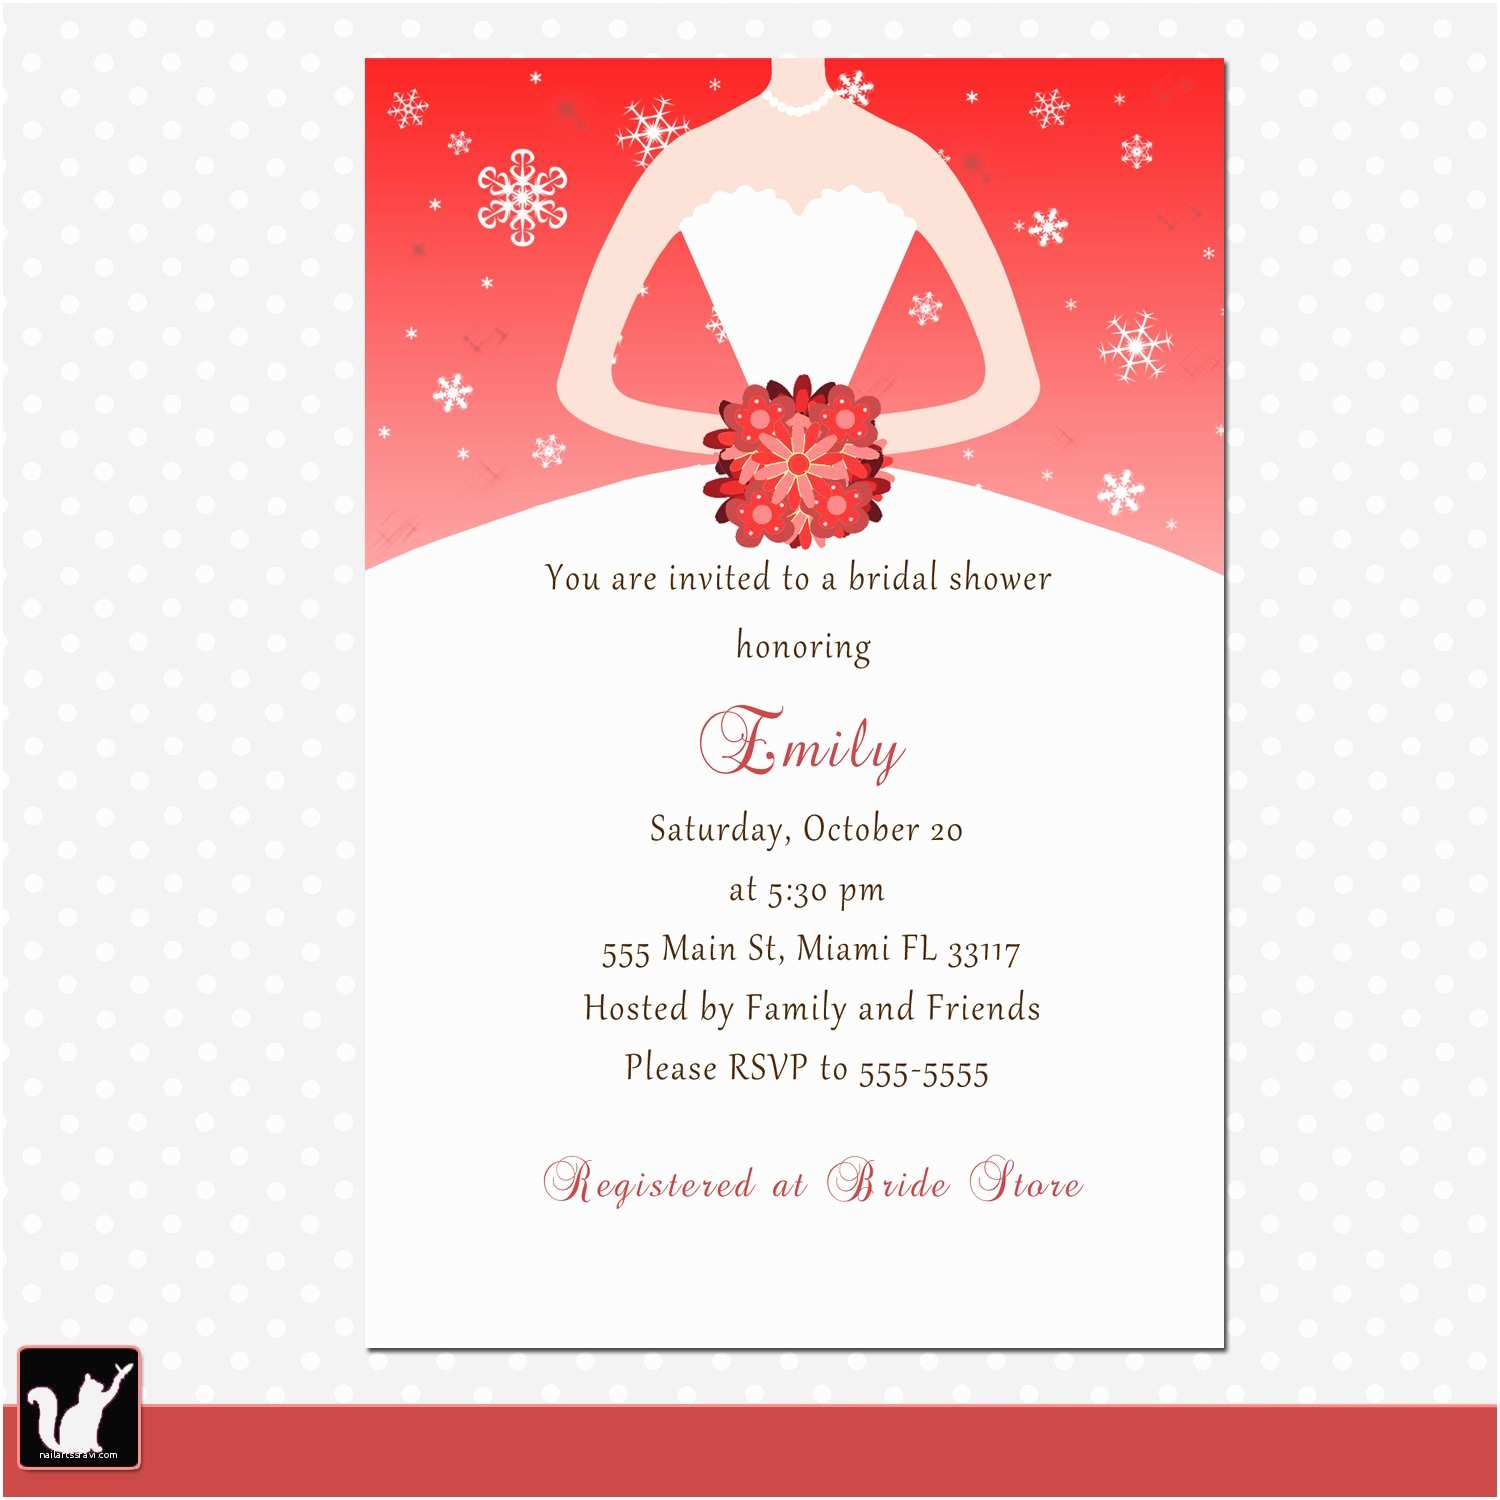 Party City Birthday Invitations Party City Invitations Wedding Invitation Librarry